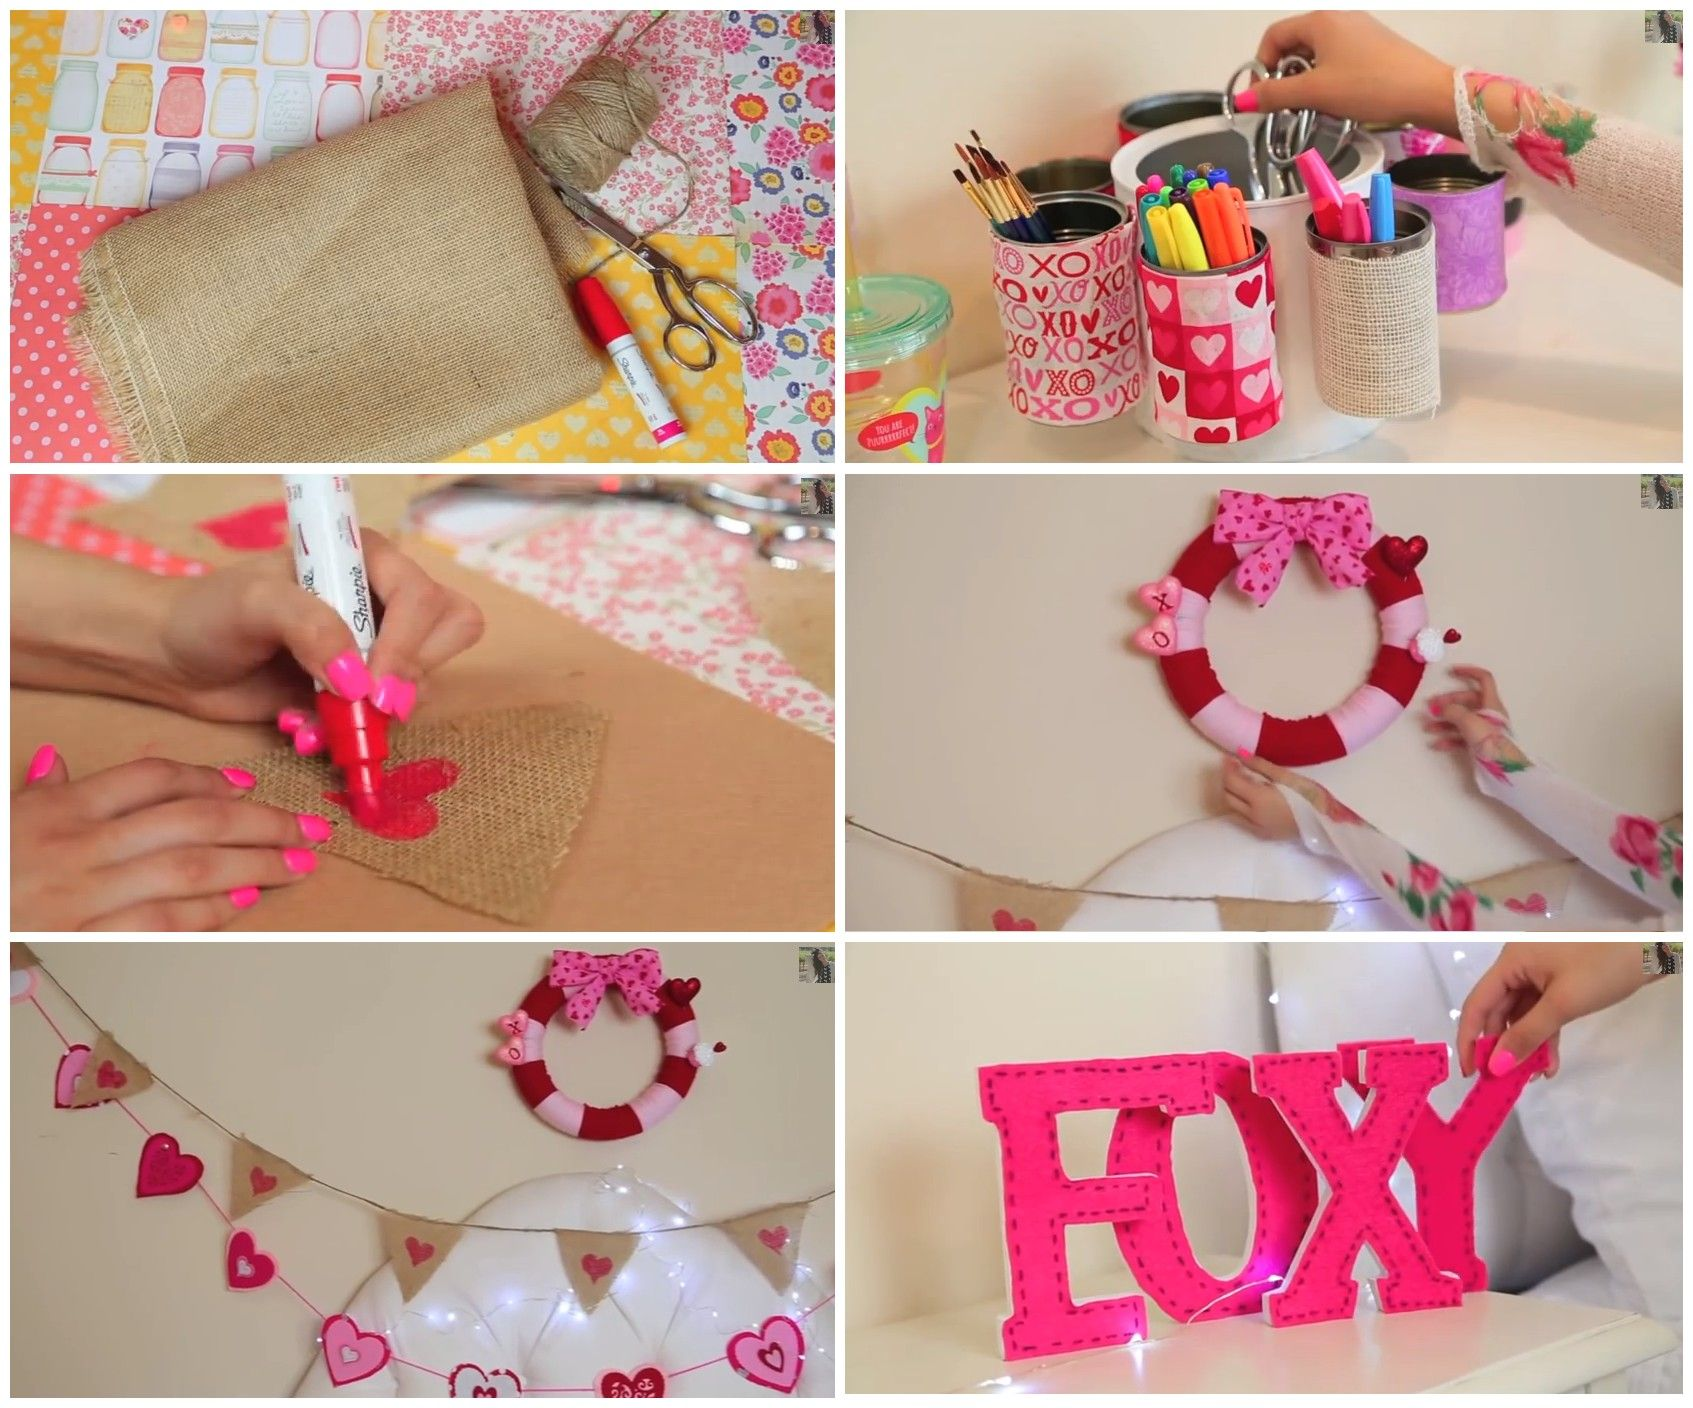 Diy Room Decorations For Valentine S Day Amp More